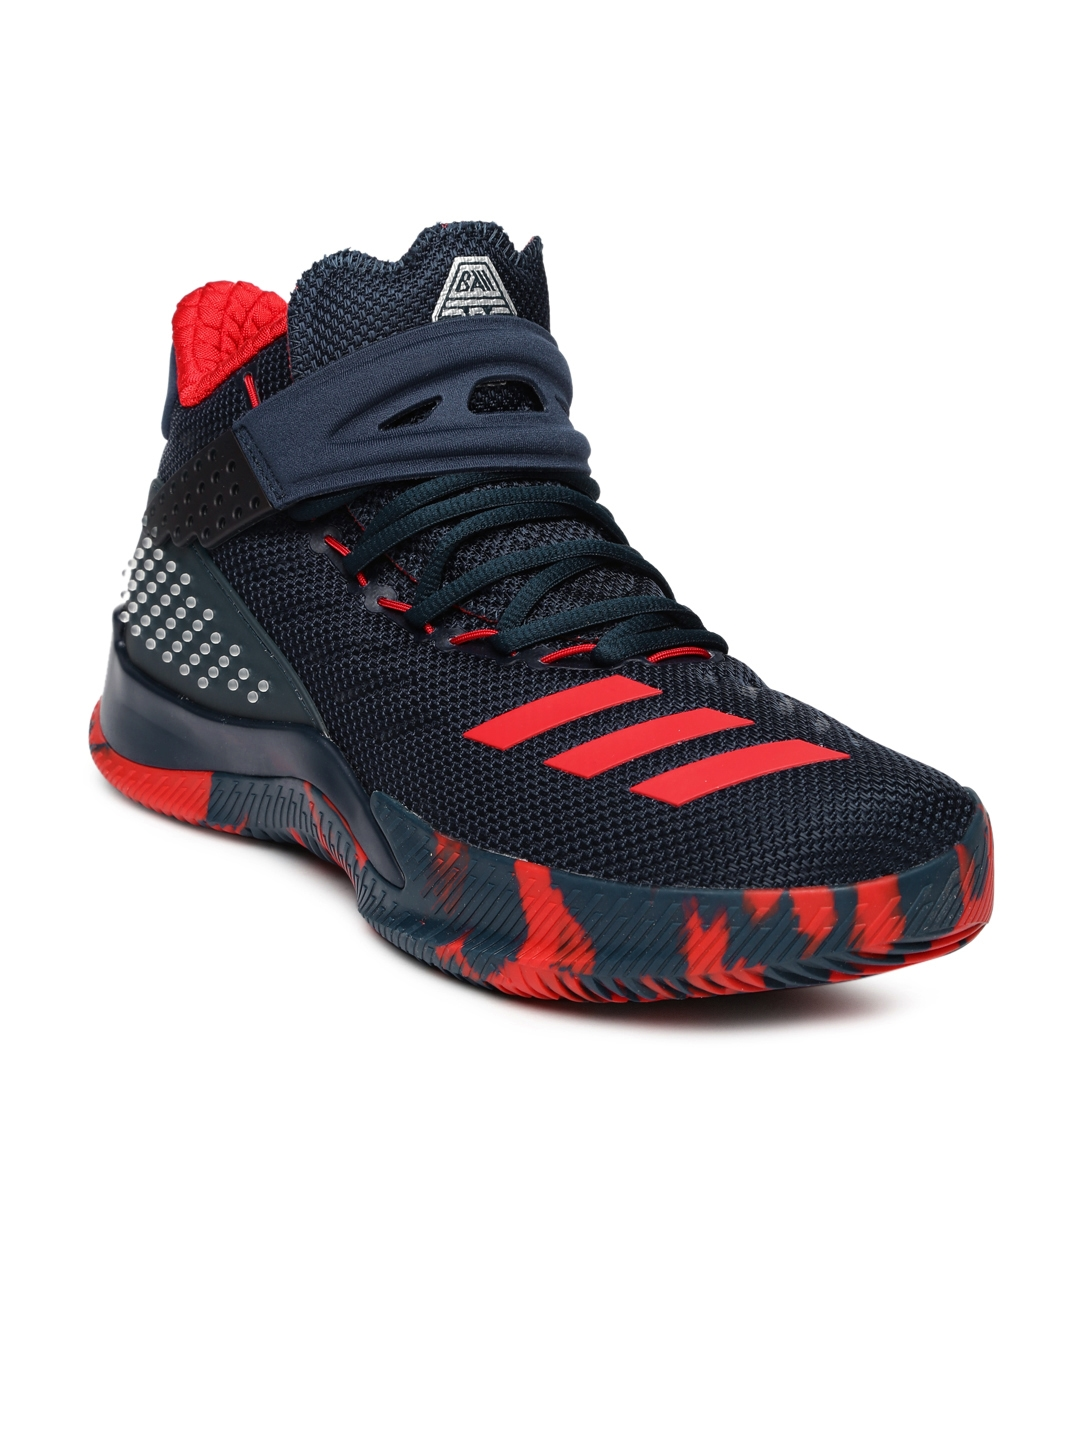 adidas basketball shoes. rs. 10999 adidas basketball shoes 1